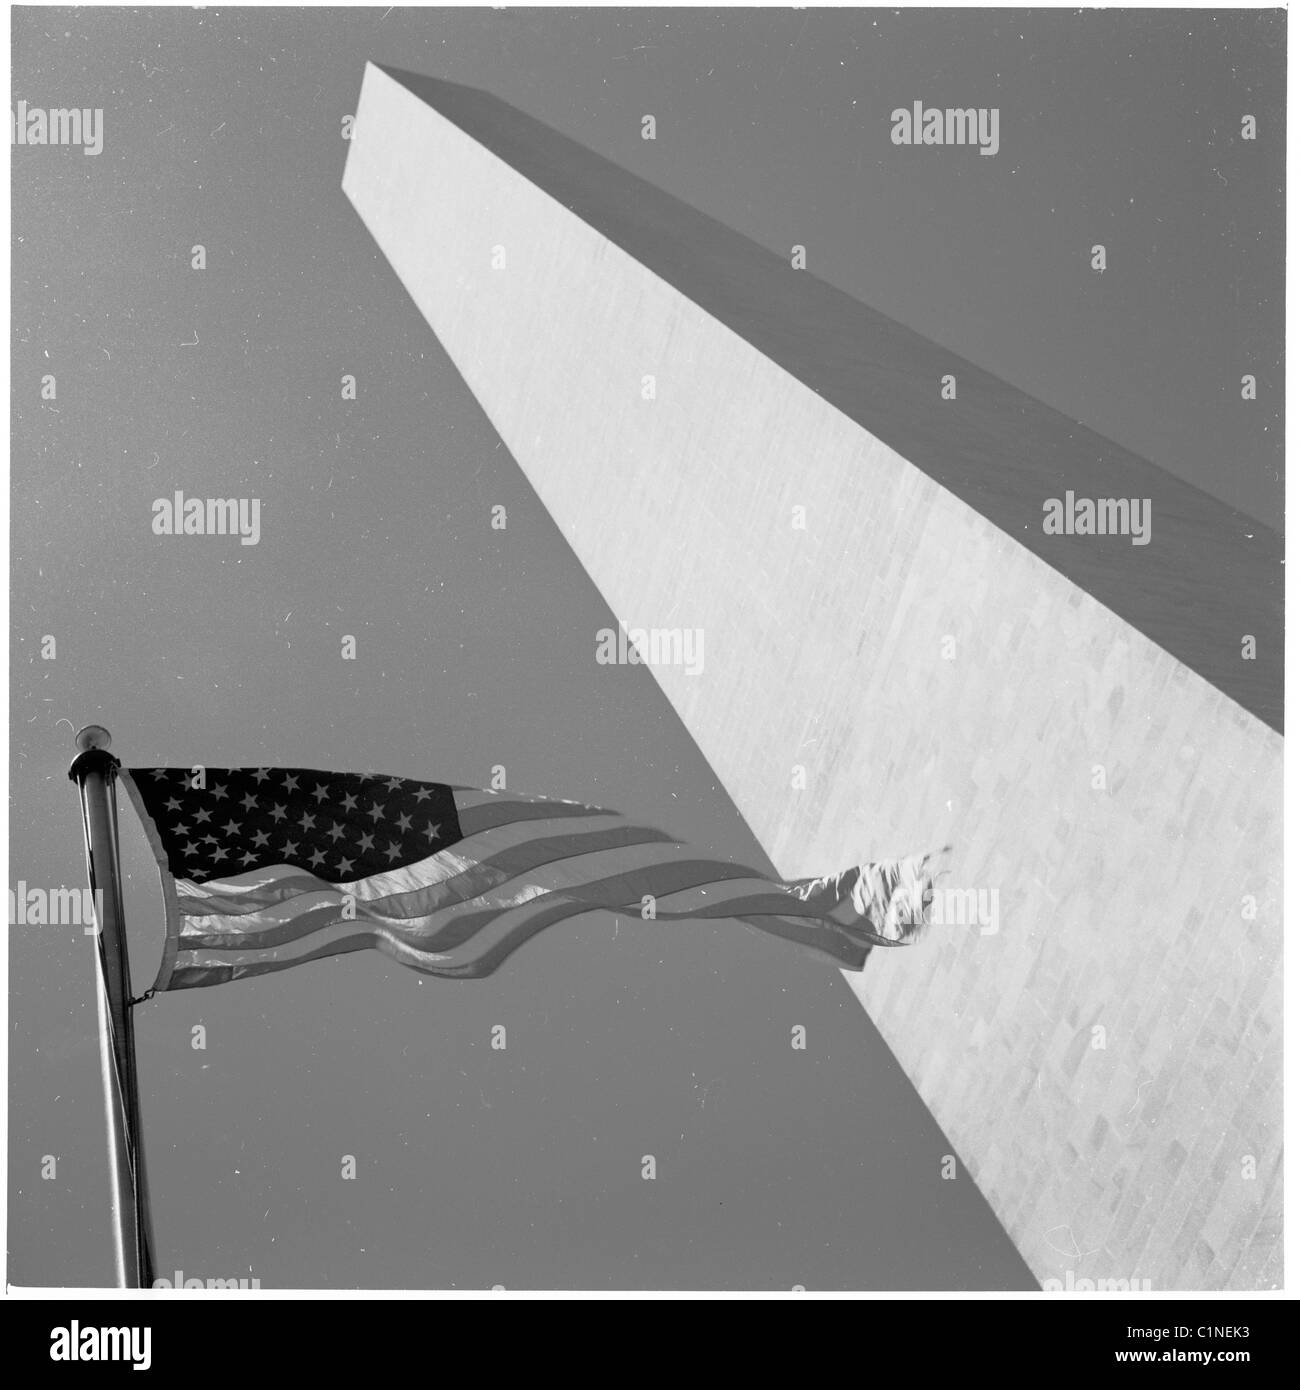 America, 1950s. Photograph by J Allan Cash. Exterior shot of the Washington Momument, with USA waving flag. - Stock Image